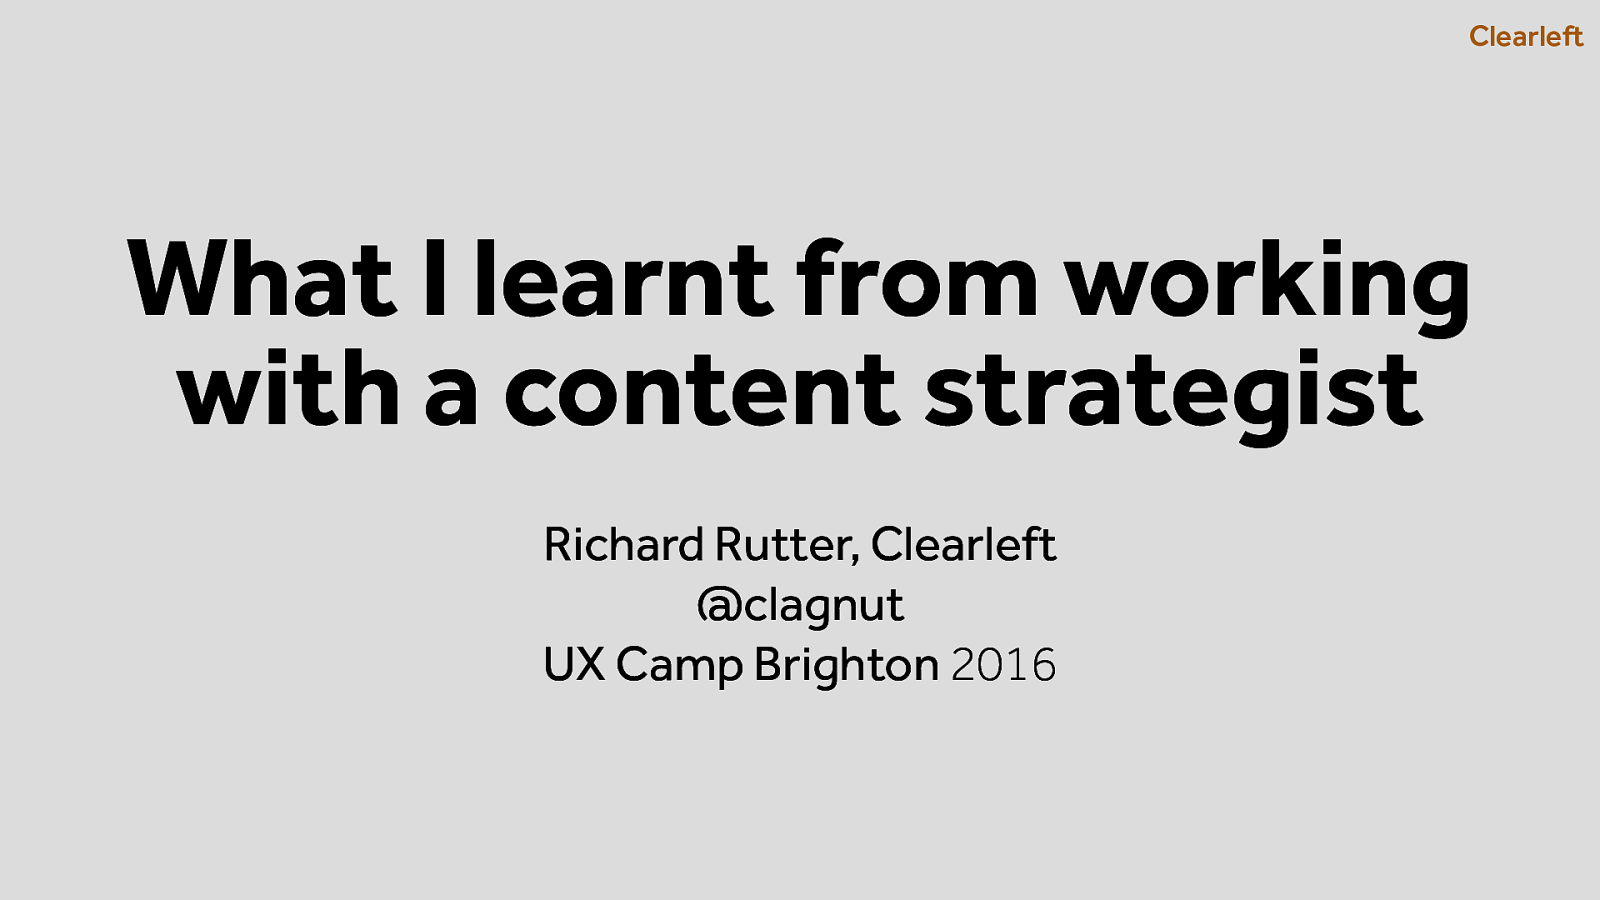 What I learnt from working with a content strategist